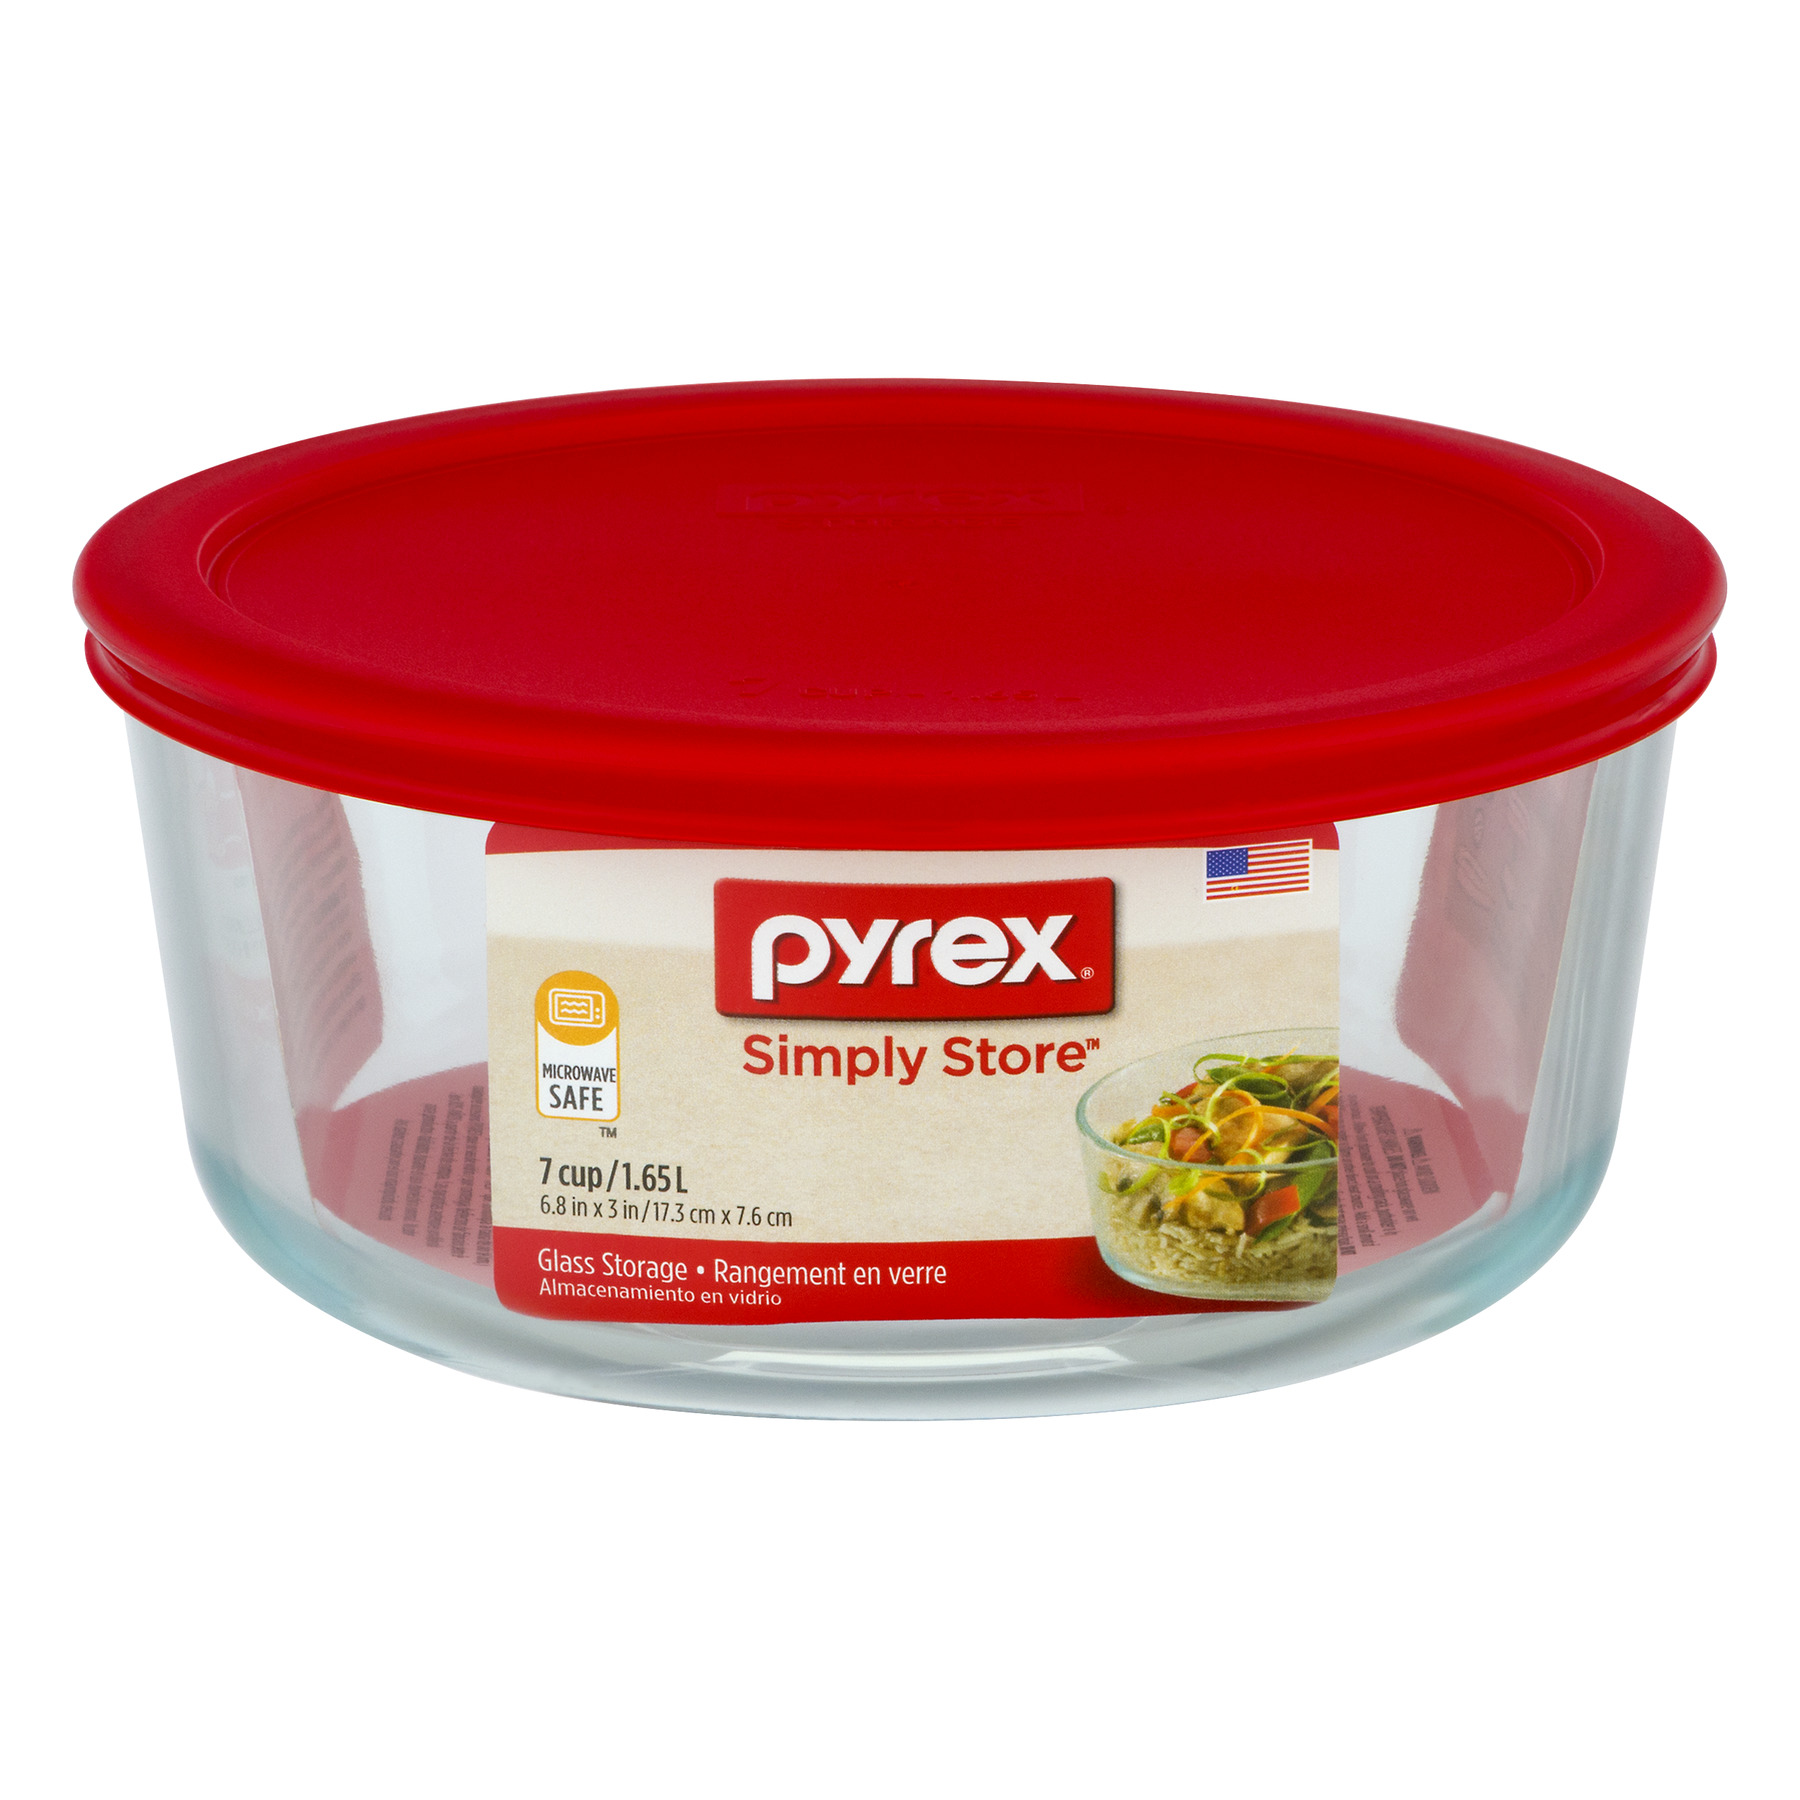 Pyrex Simply Store Glass Storage Container, 1.0 CT